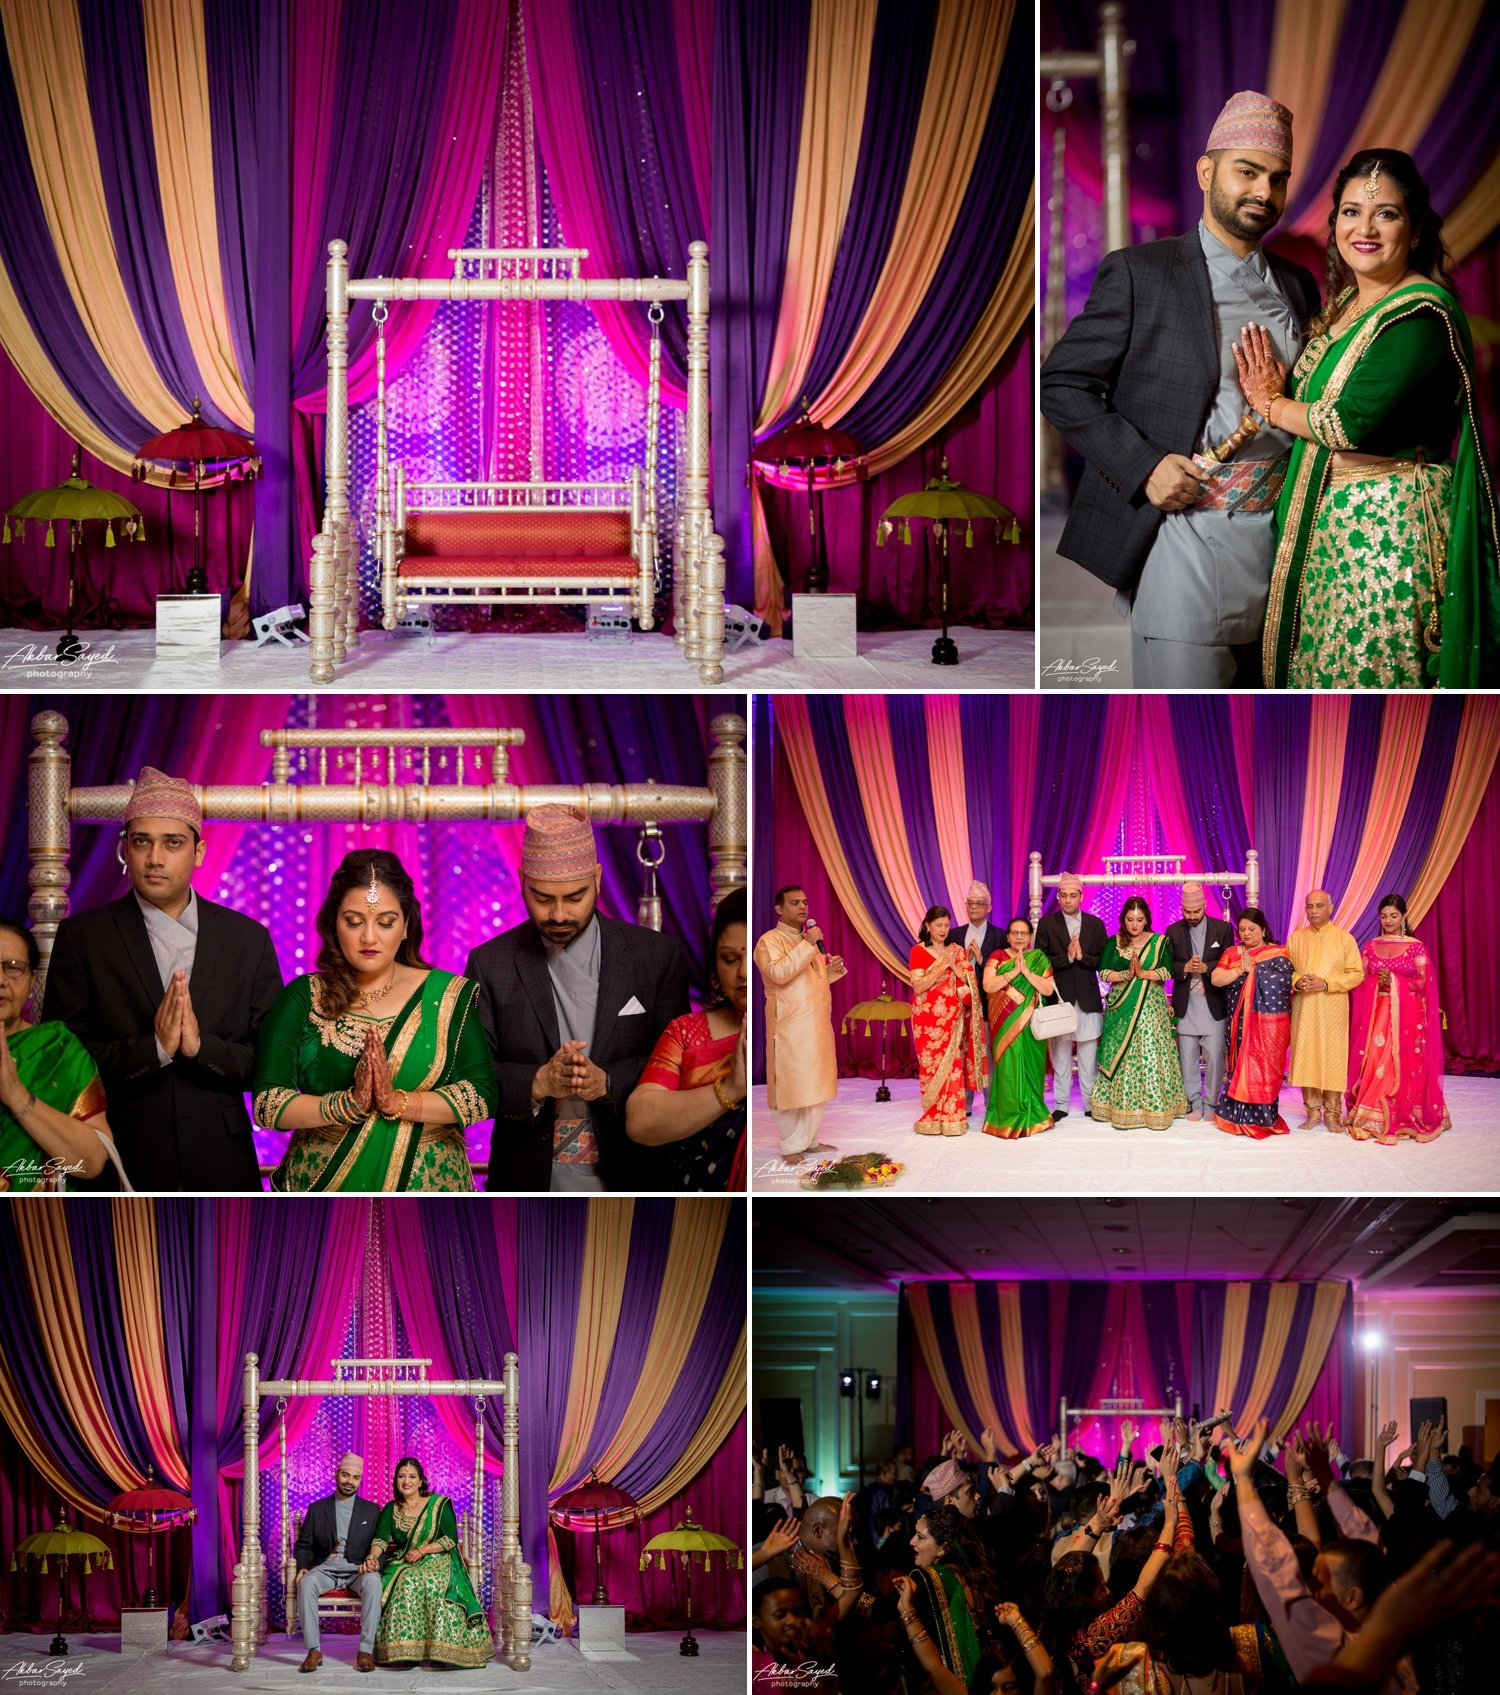 A photo collage of South Asian Hindu sangeet decor created by L'Ambiance wedding decor at the BWI Marriott.